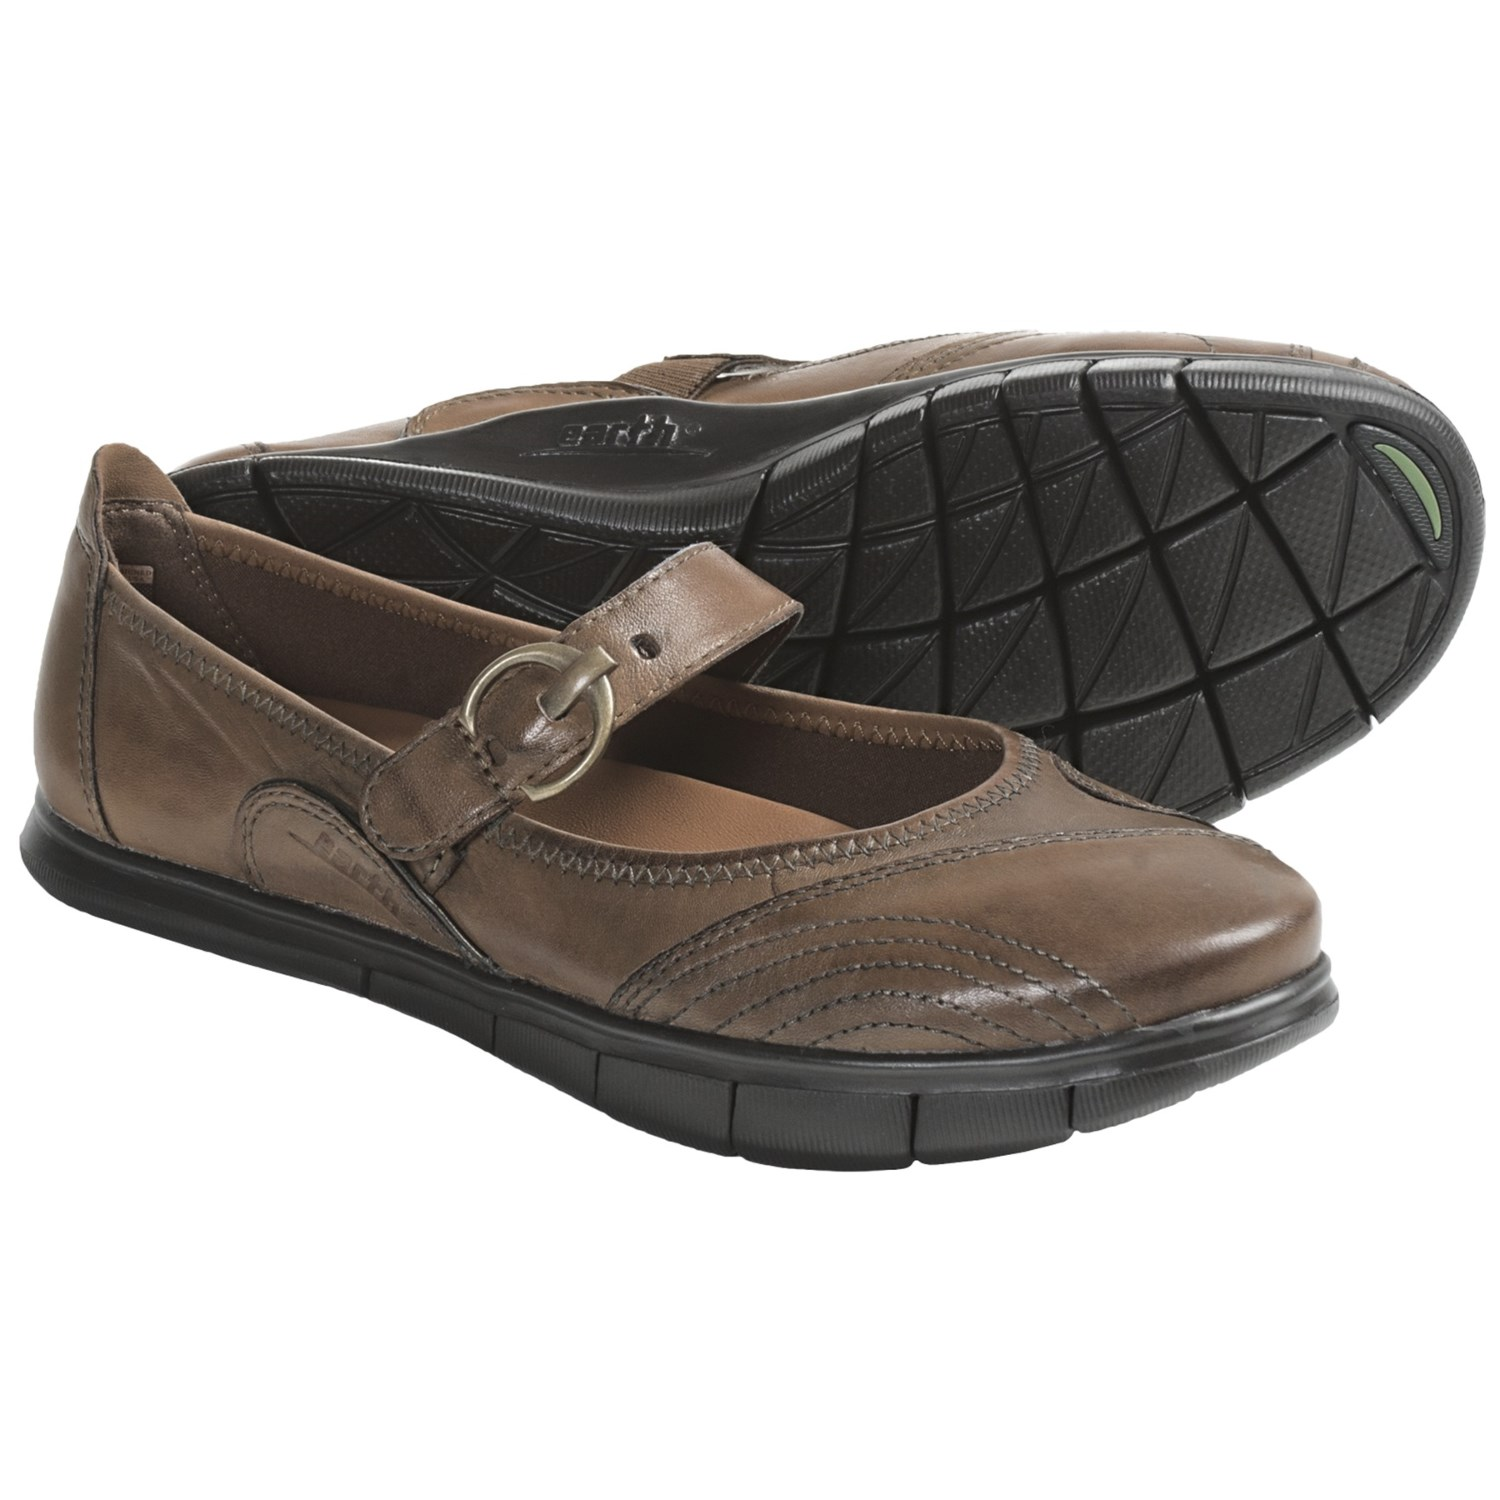 Free Diabetic Shoes . Shoes, that zappos!the broadest selection of